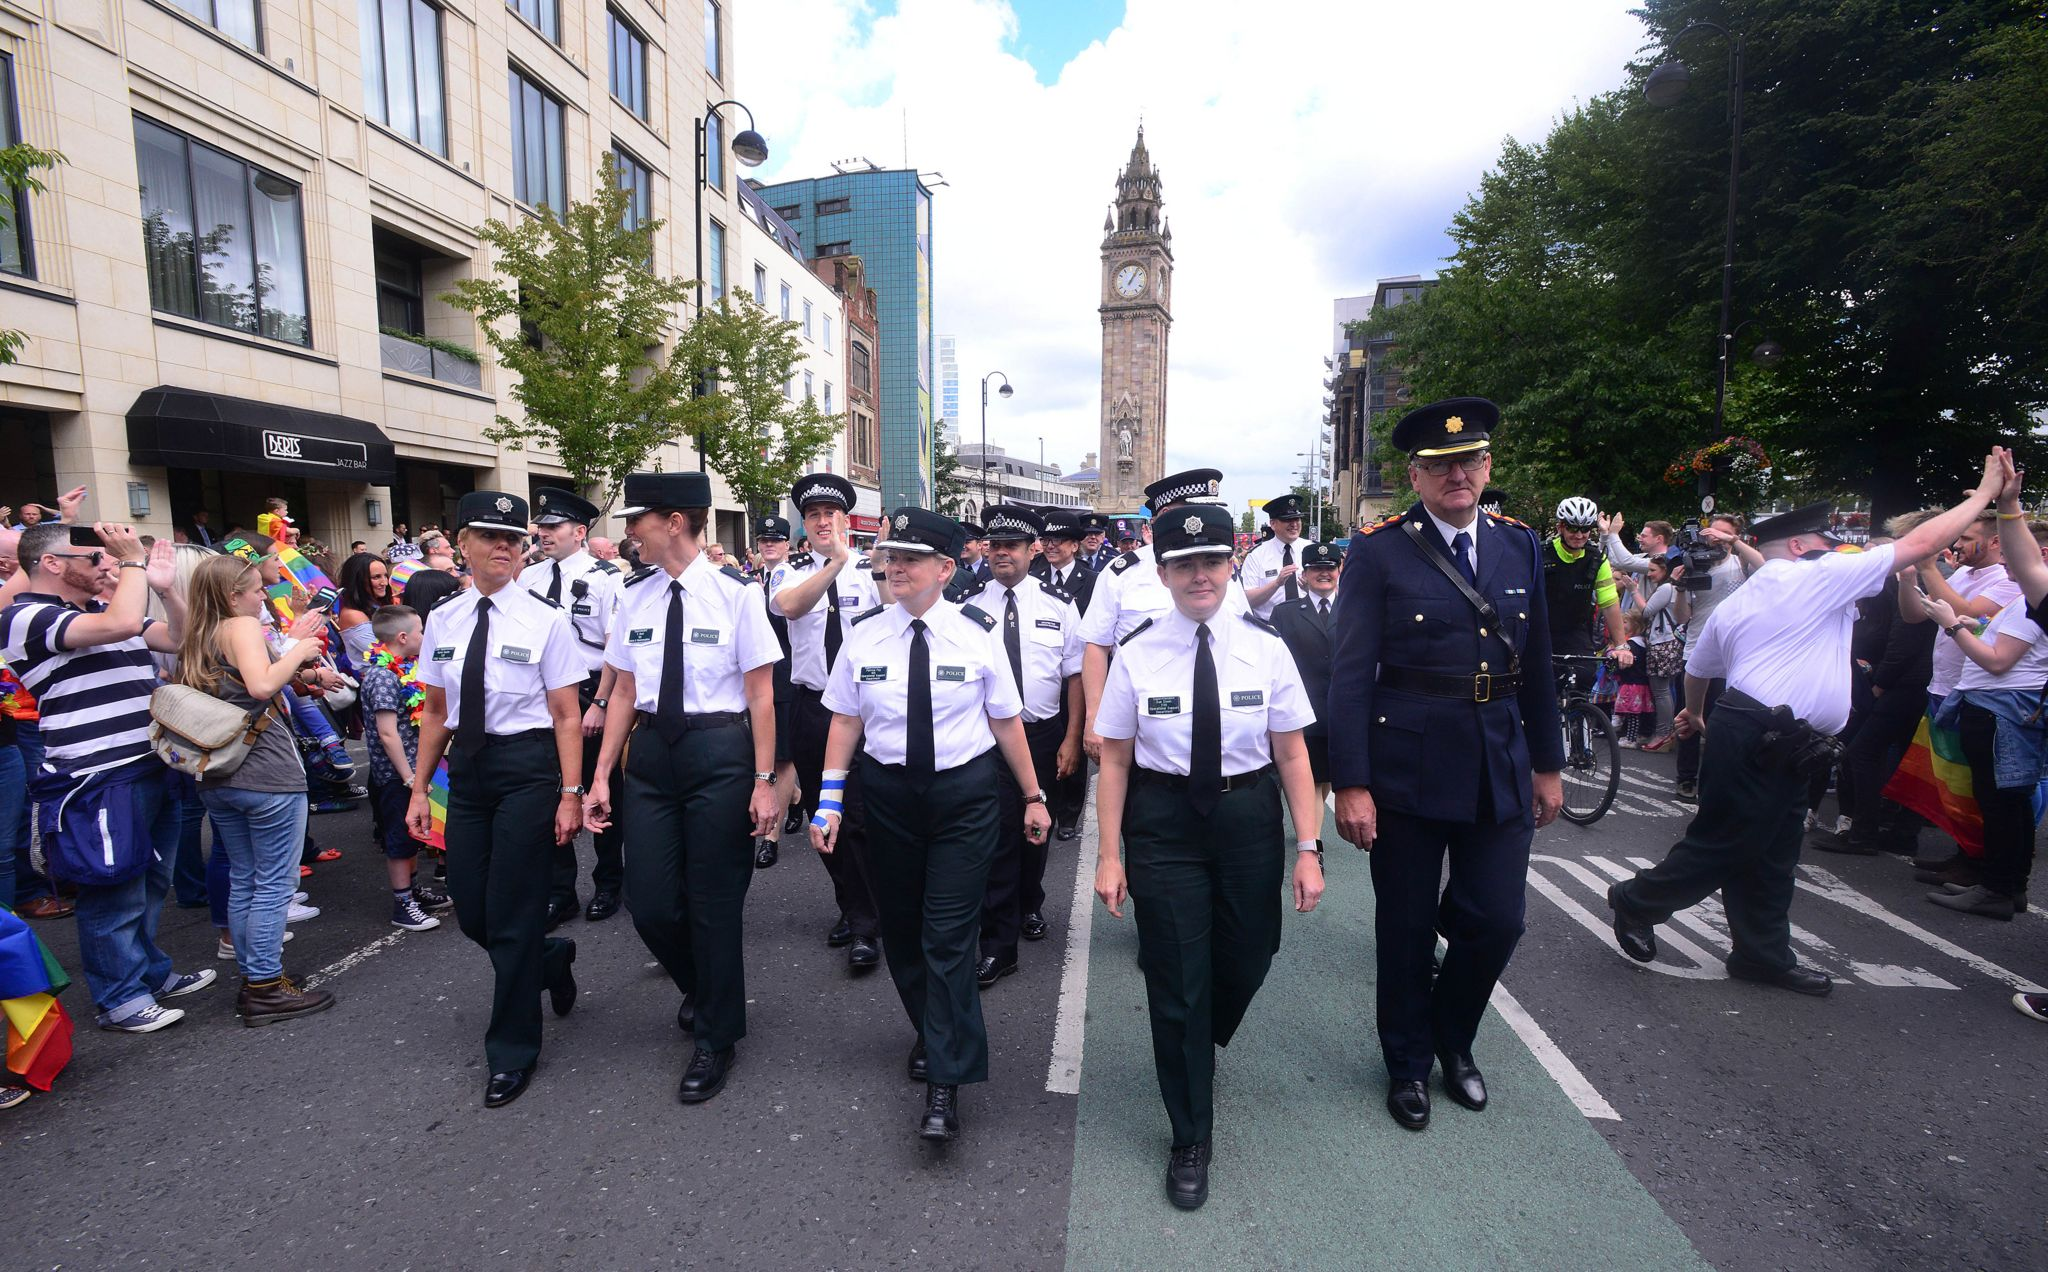 Last year, members of the PSNI and the Garda joined thousands of people in the annual Belfast Pride event